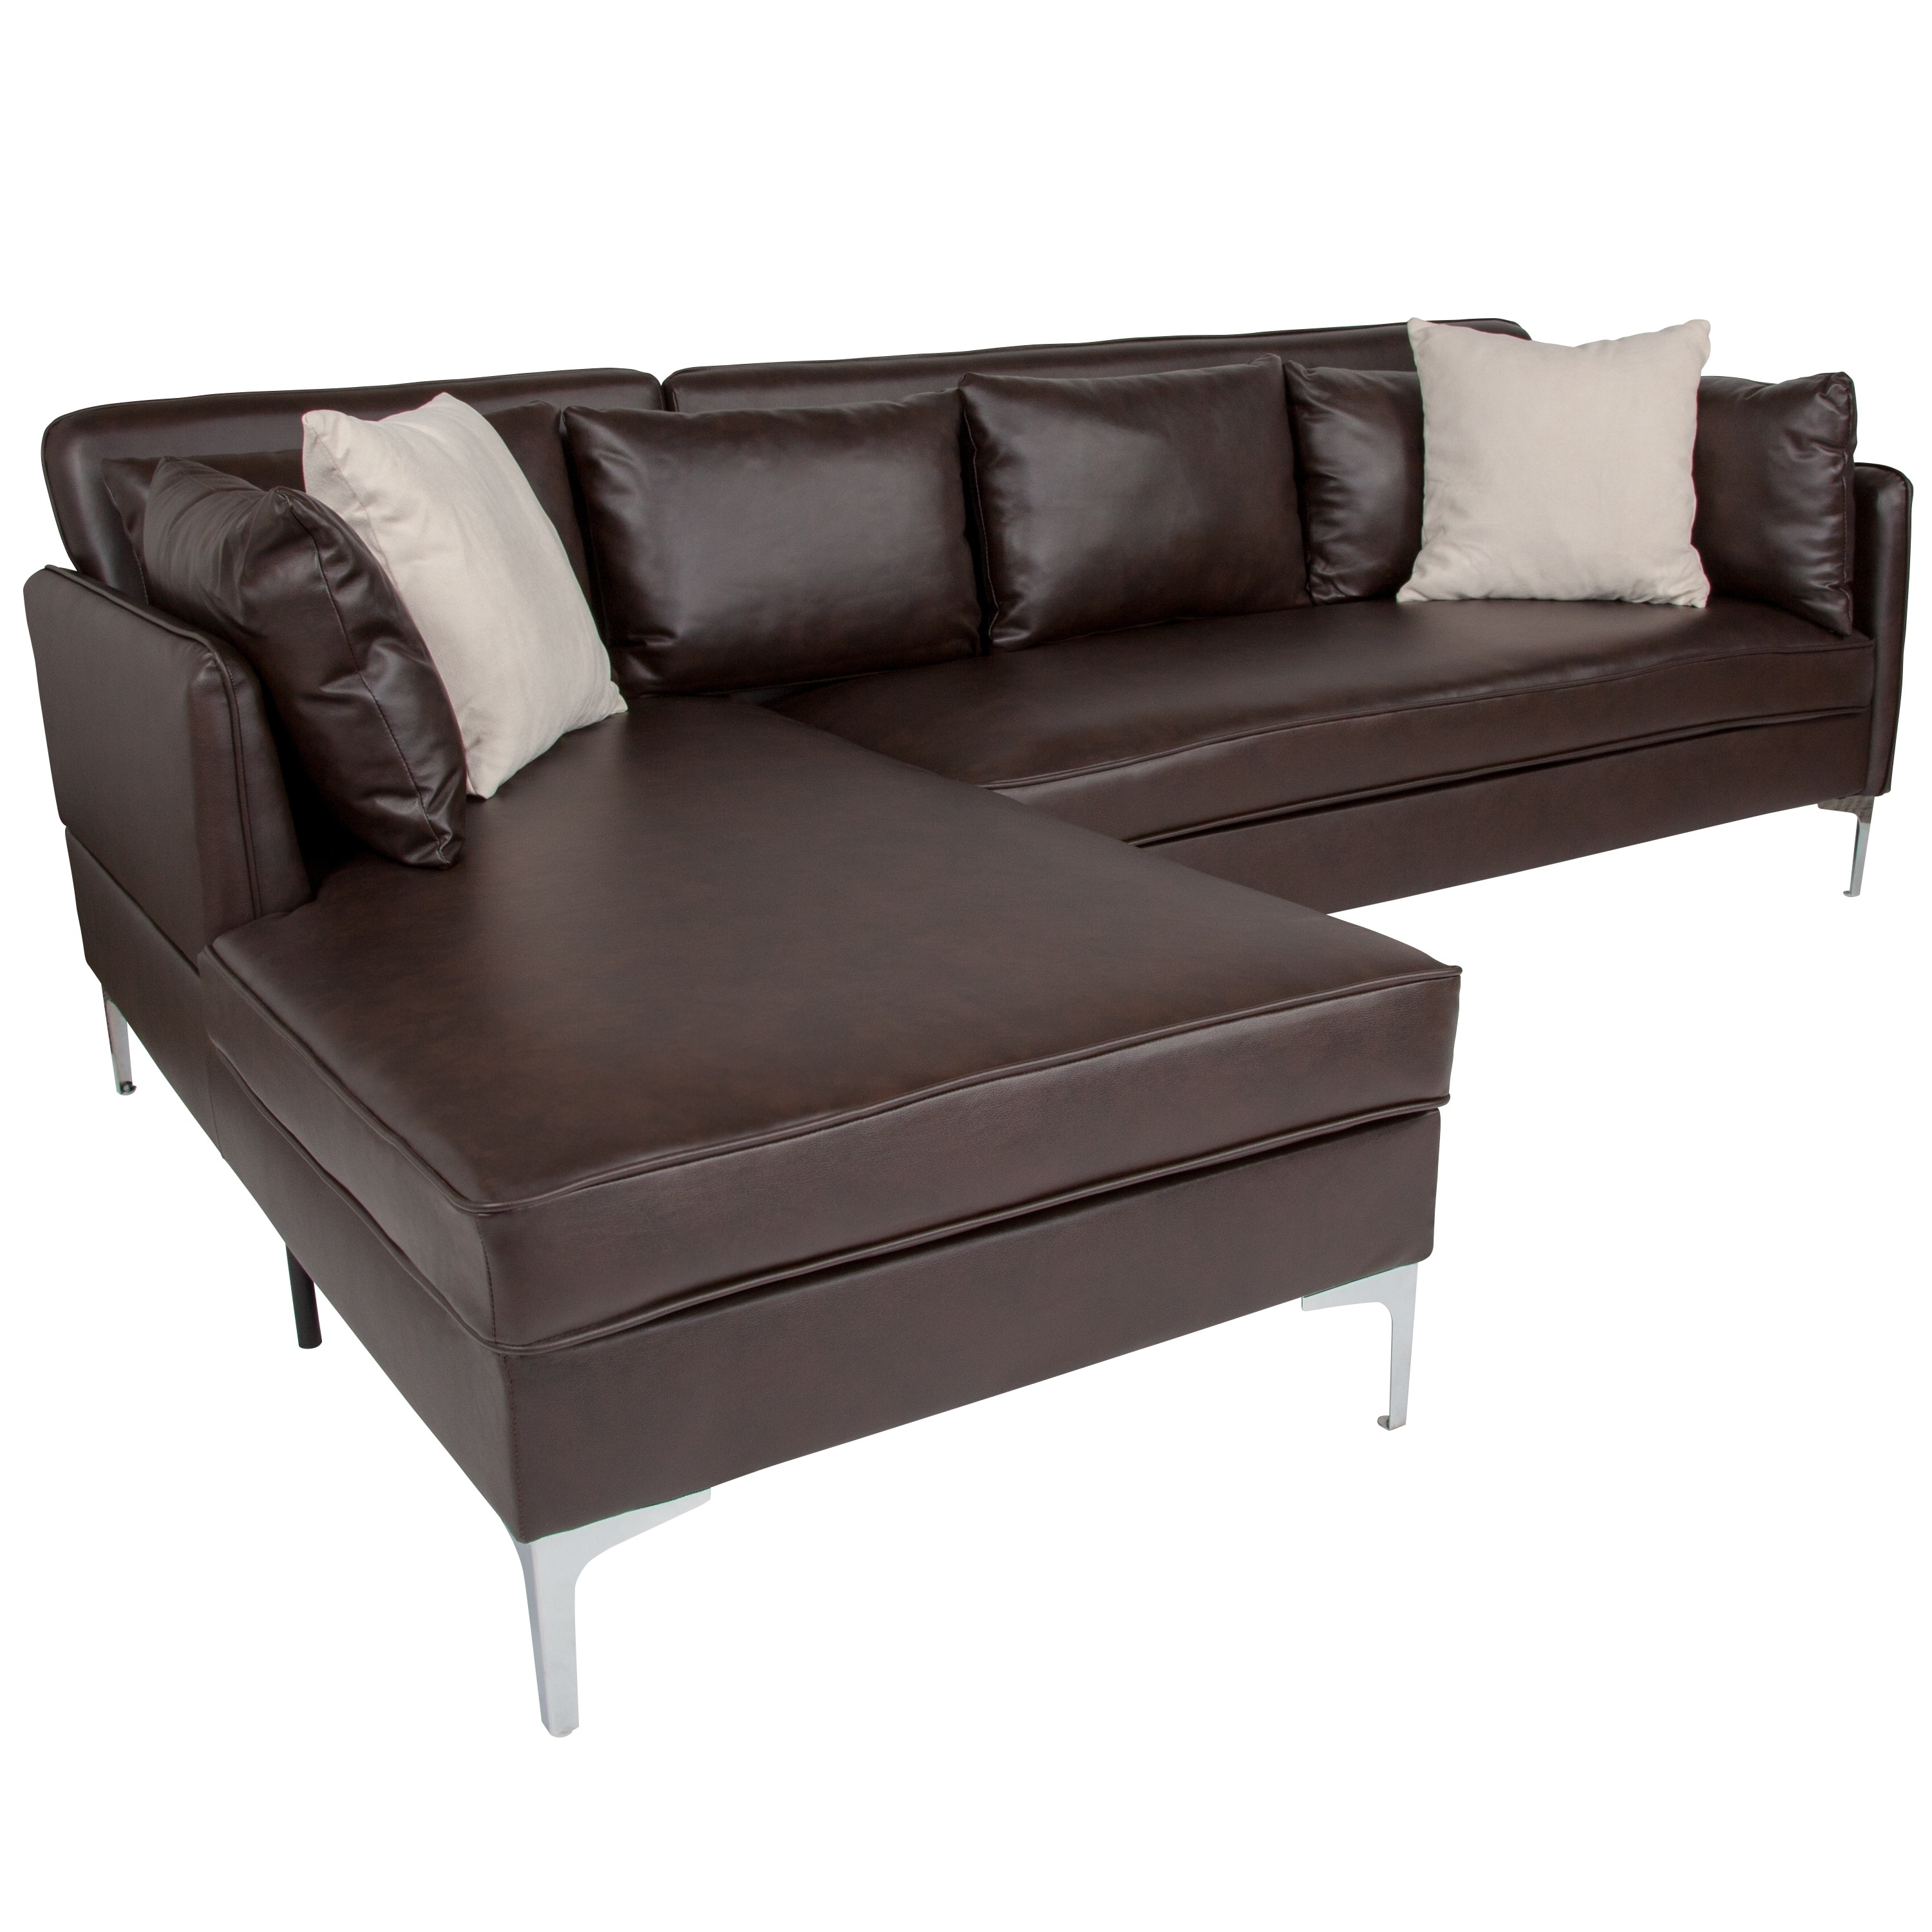 Lancaster Home Black Faux Leather L Shaped Sectional Chaise